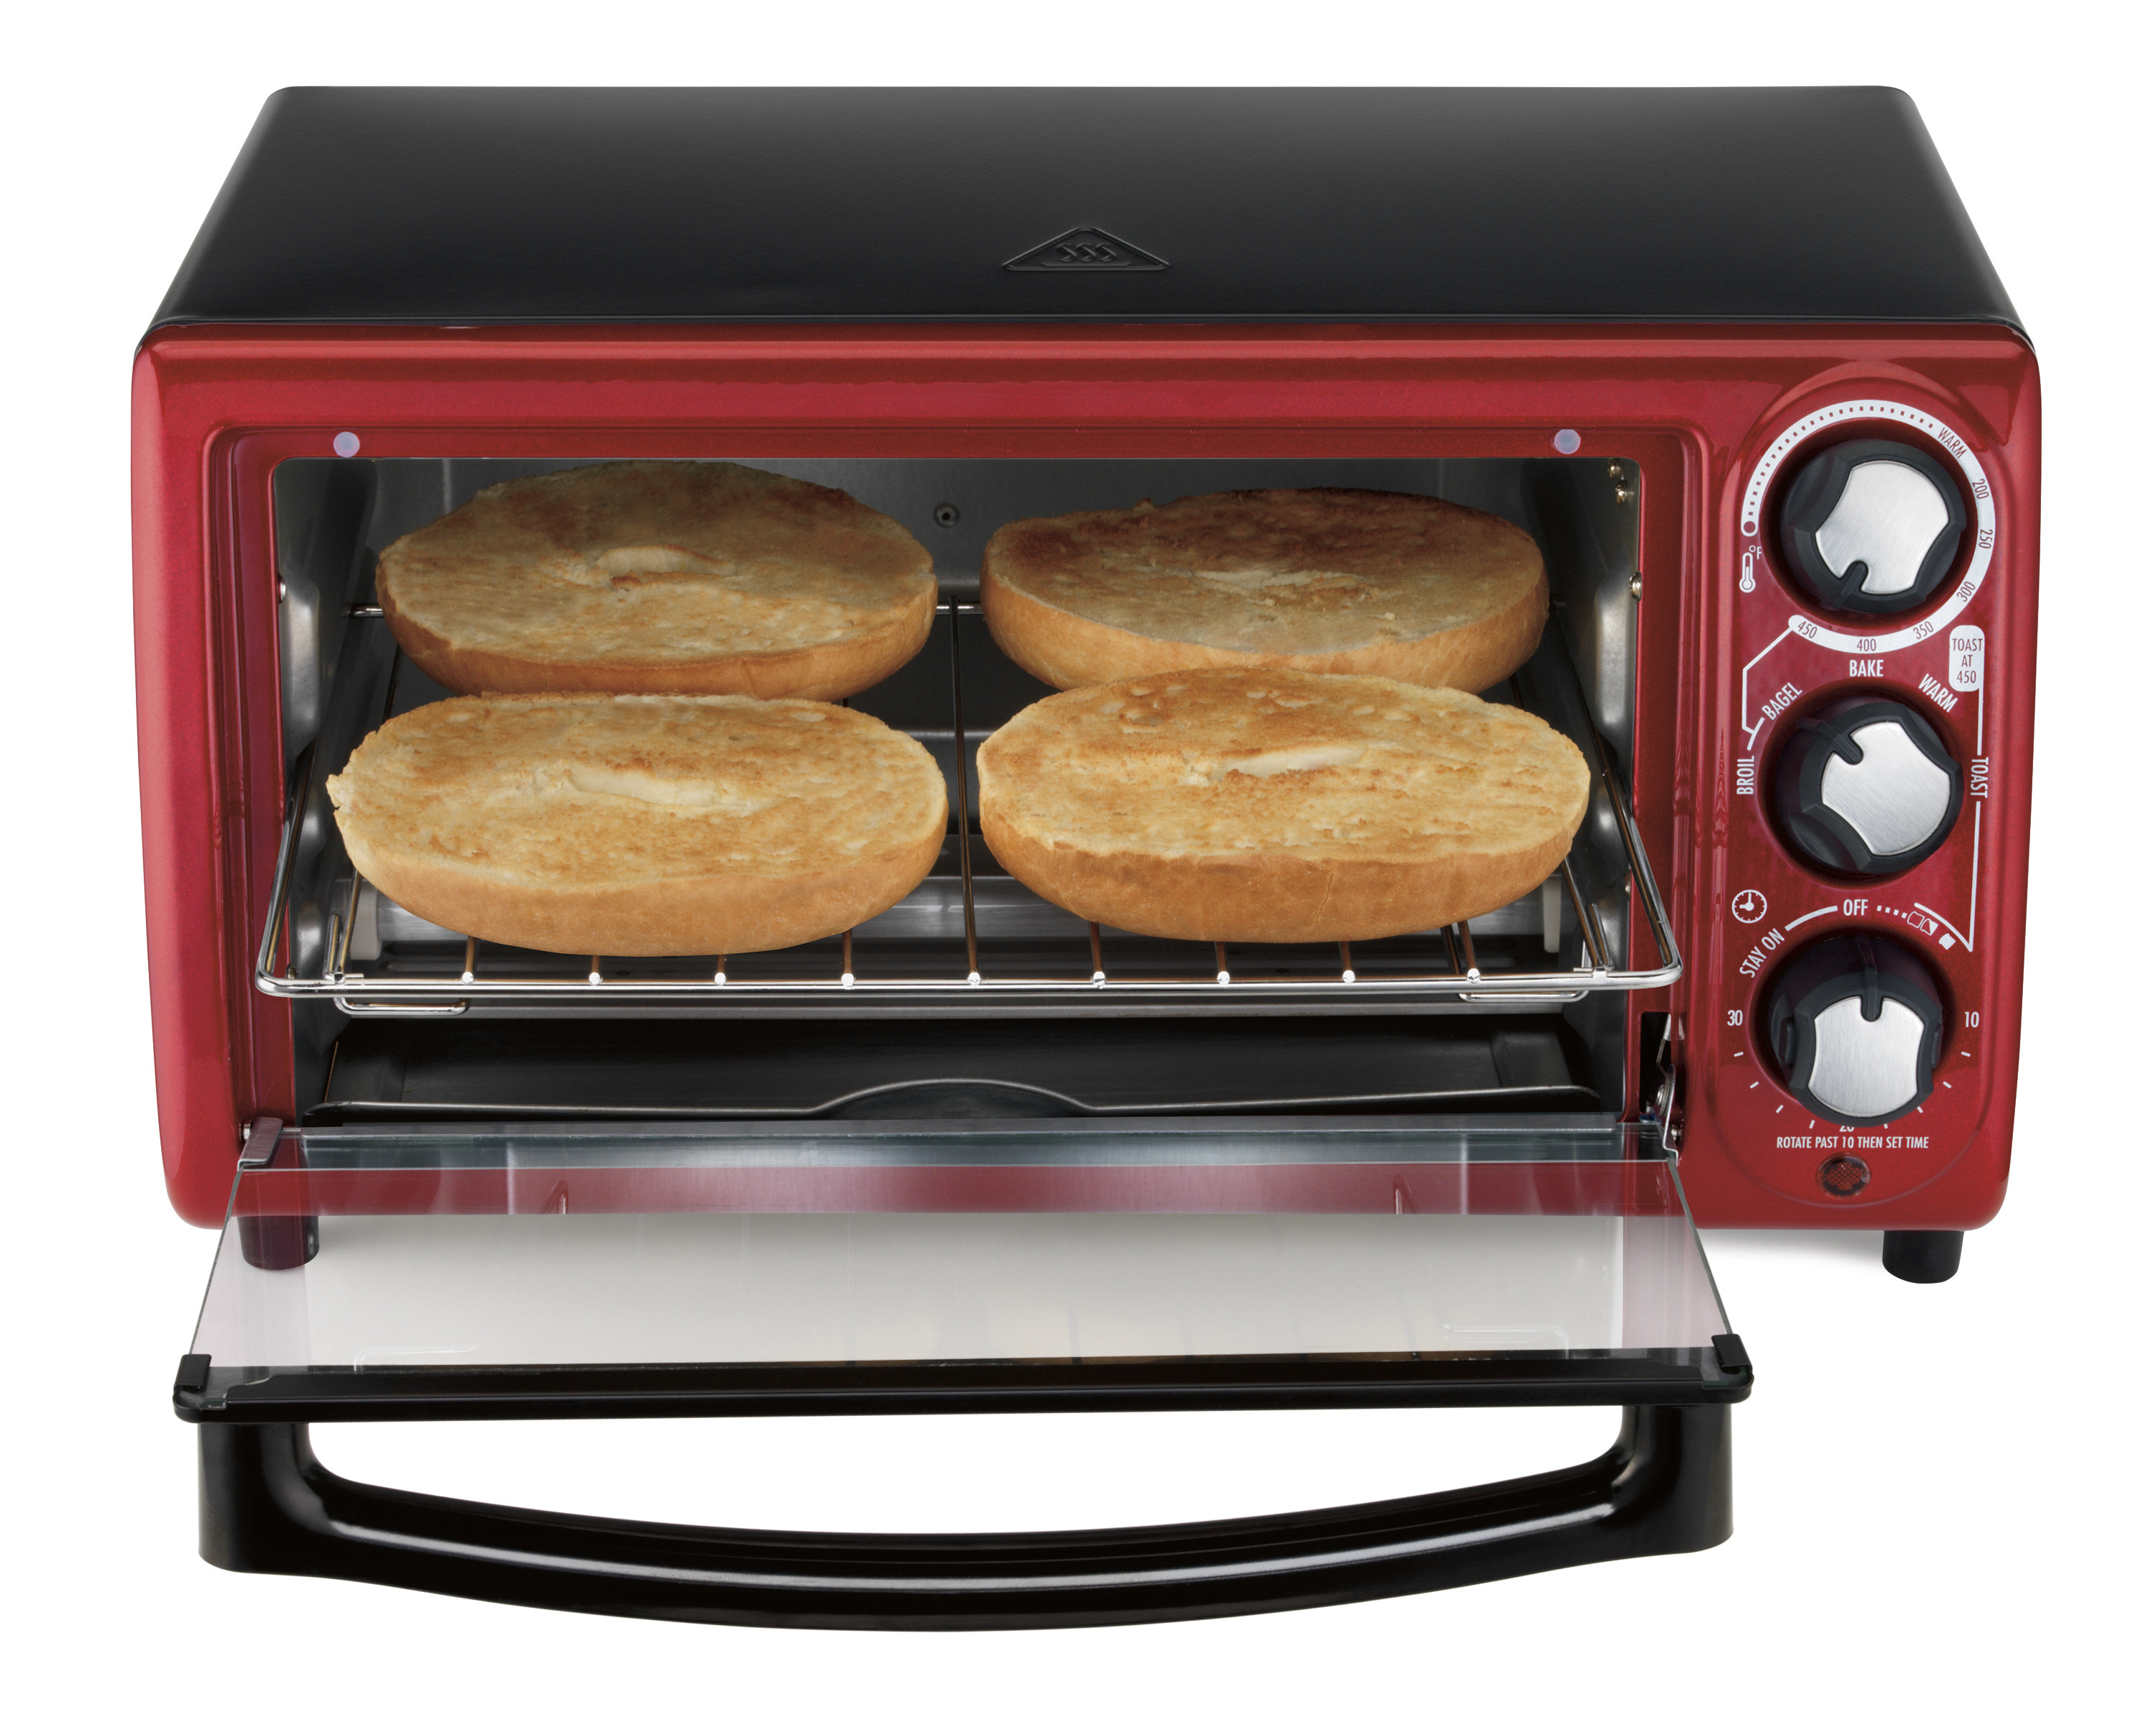 The toaster oven